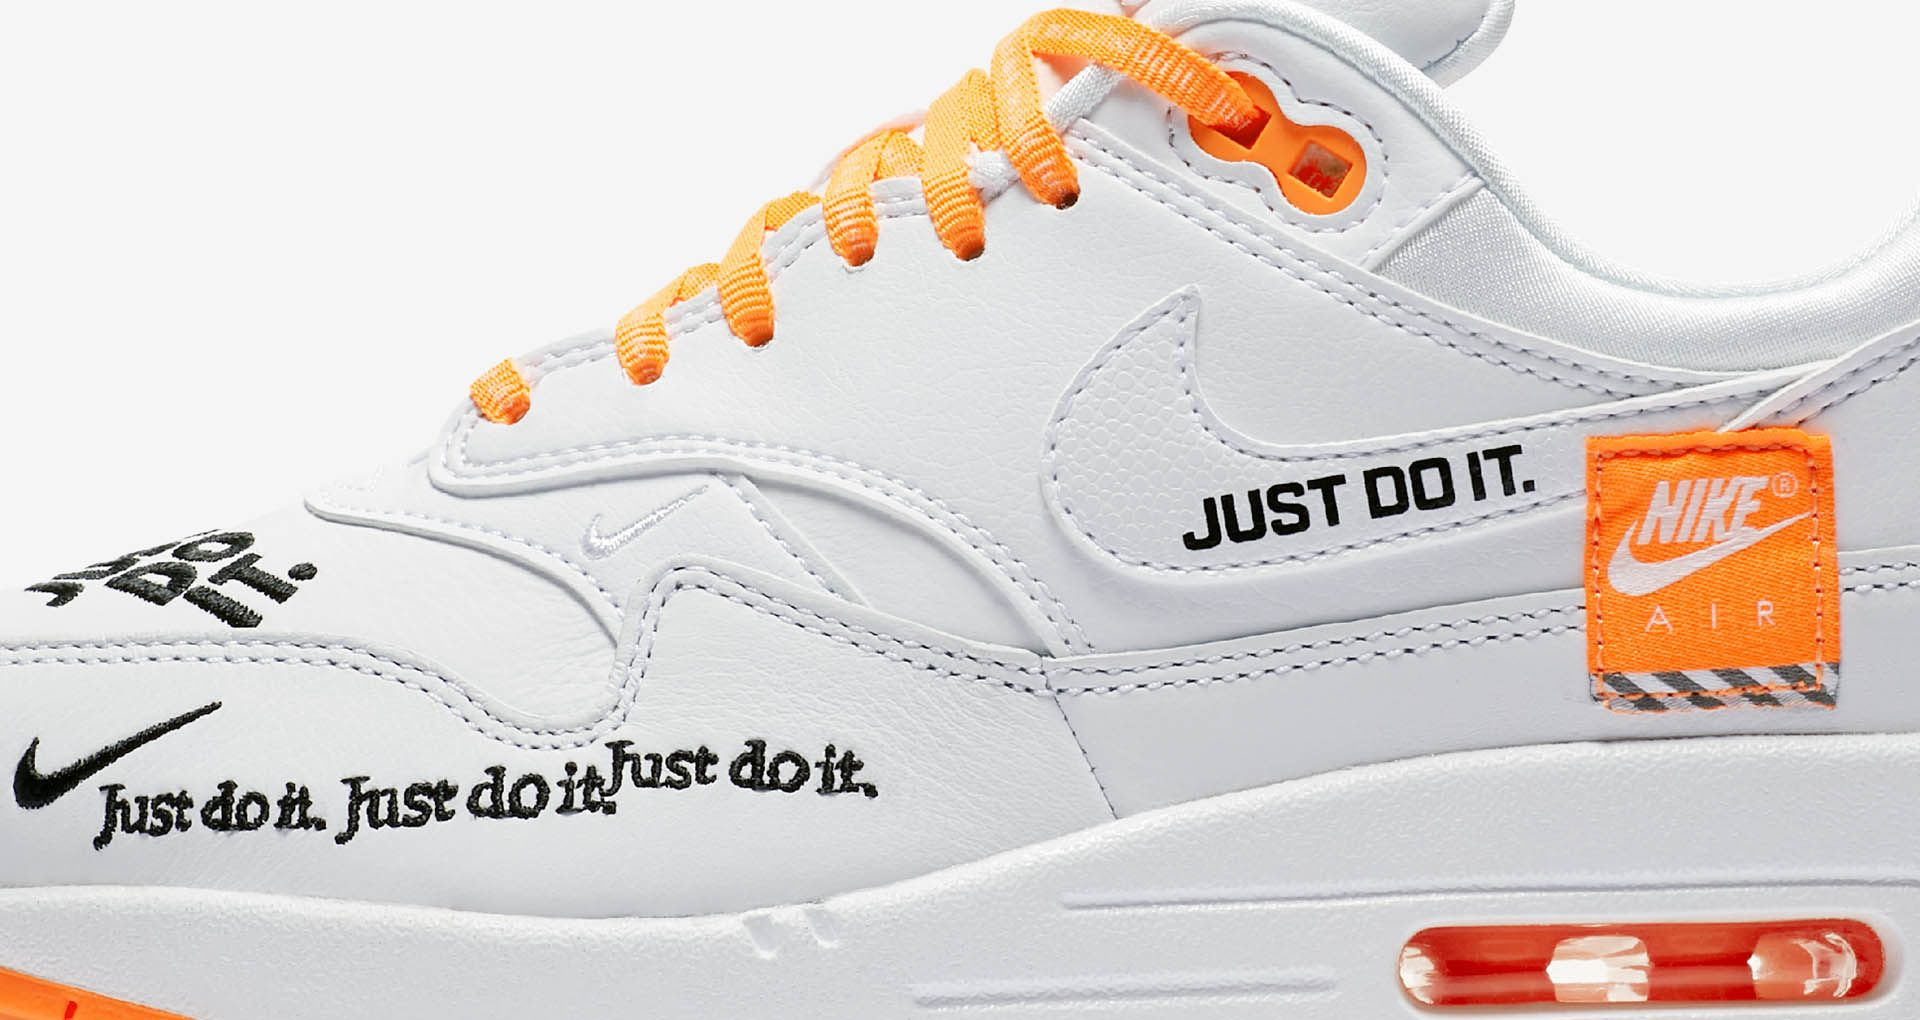 Nike Air Max 1 'Just Do It' Release Date. NikePlus SNKRS